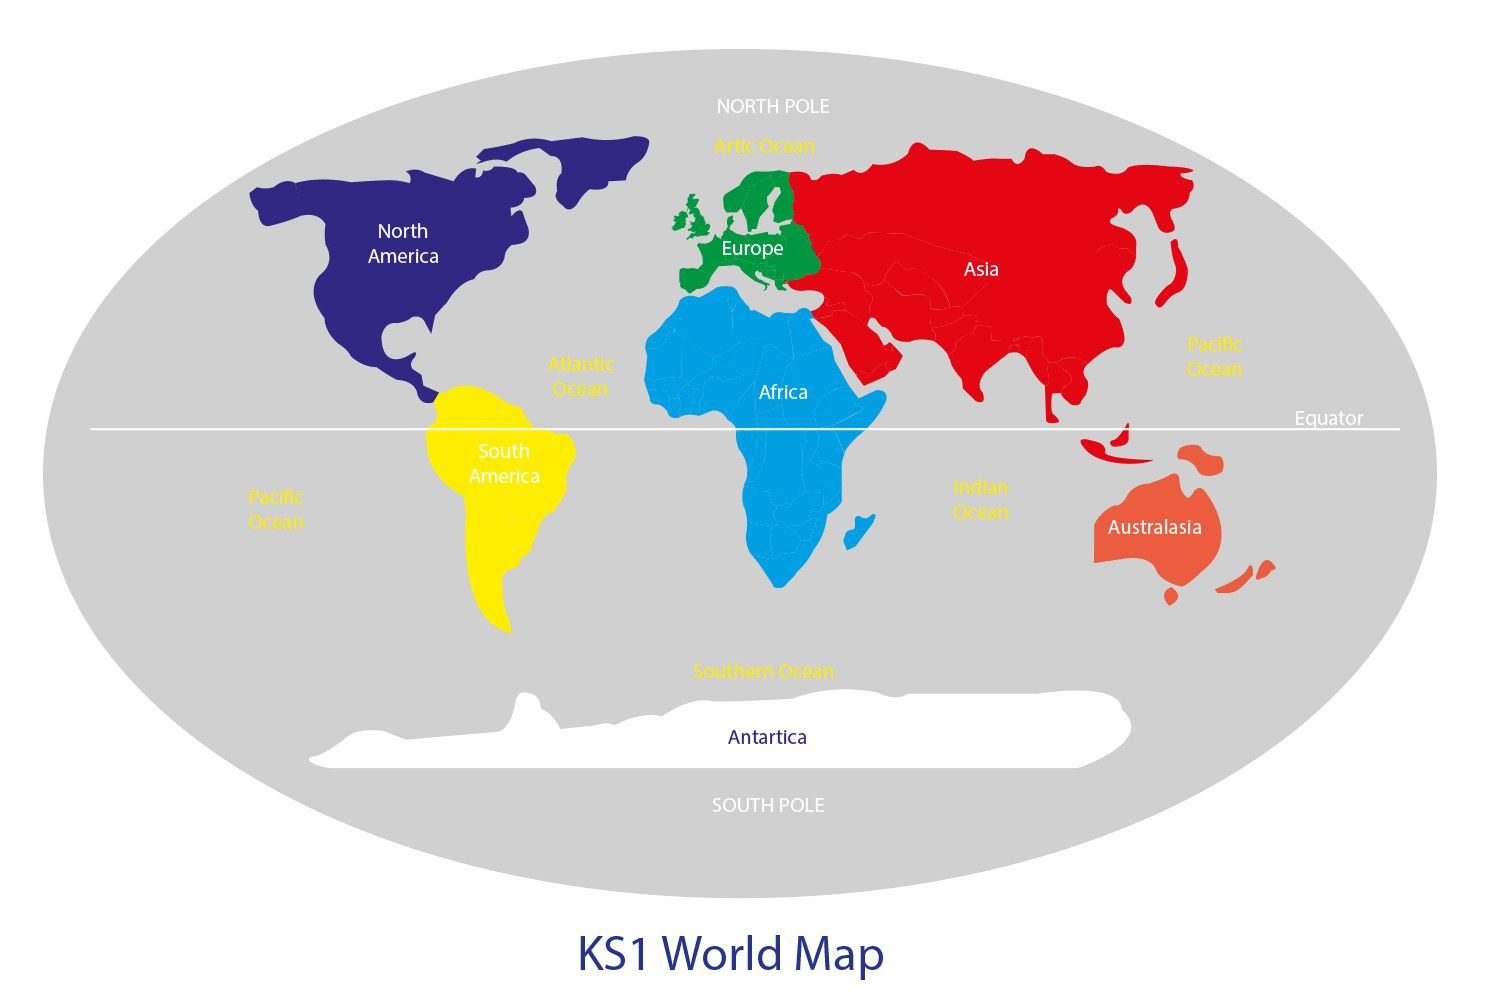 Ks1 world map with continentsease visit out website www ks1 world map with continentsease visit out website first4playgrounds gumiabroncs Image collections